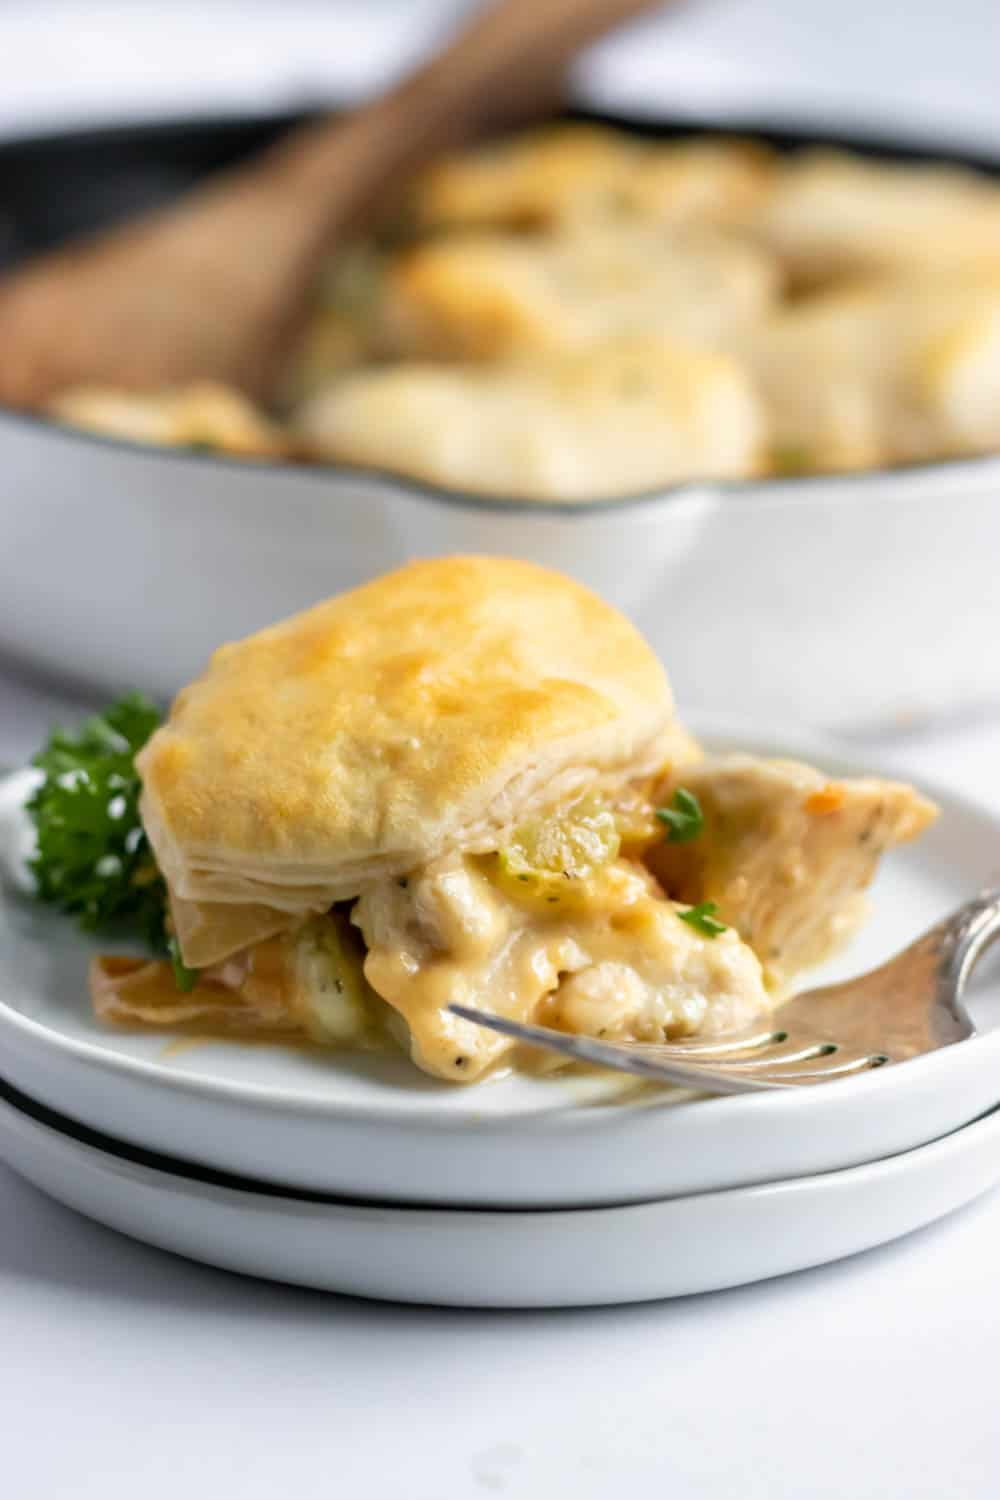 Chicken dinner with biscuit topping on white plate with skillet.